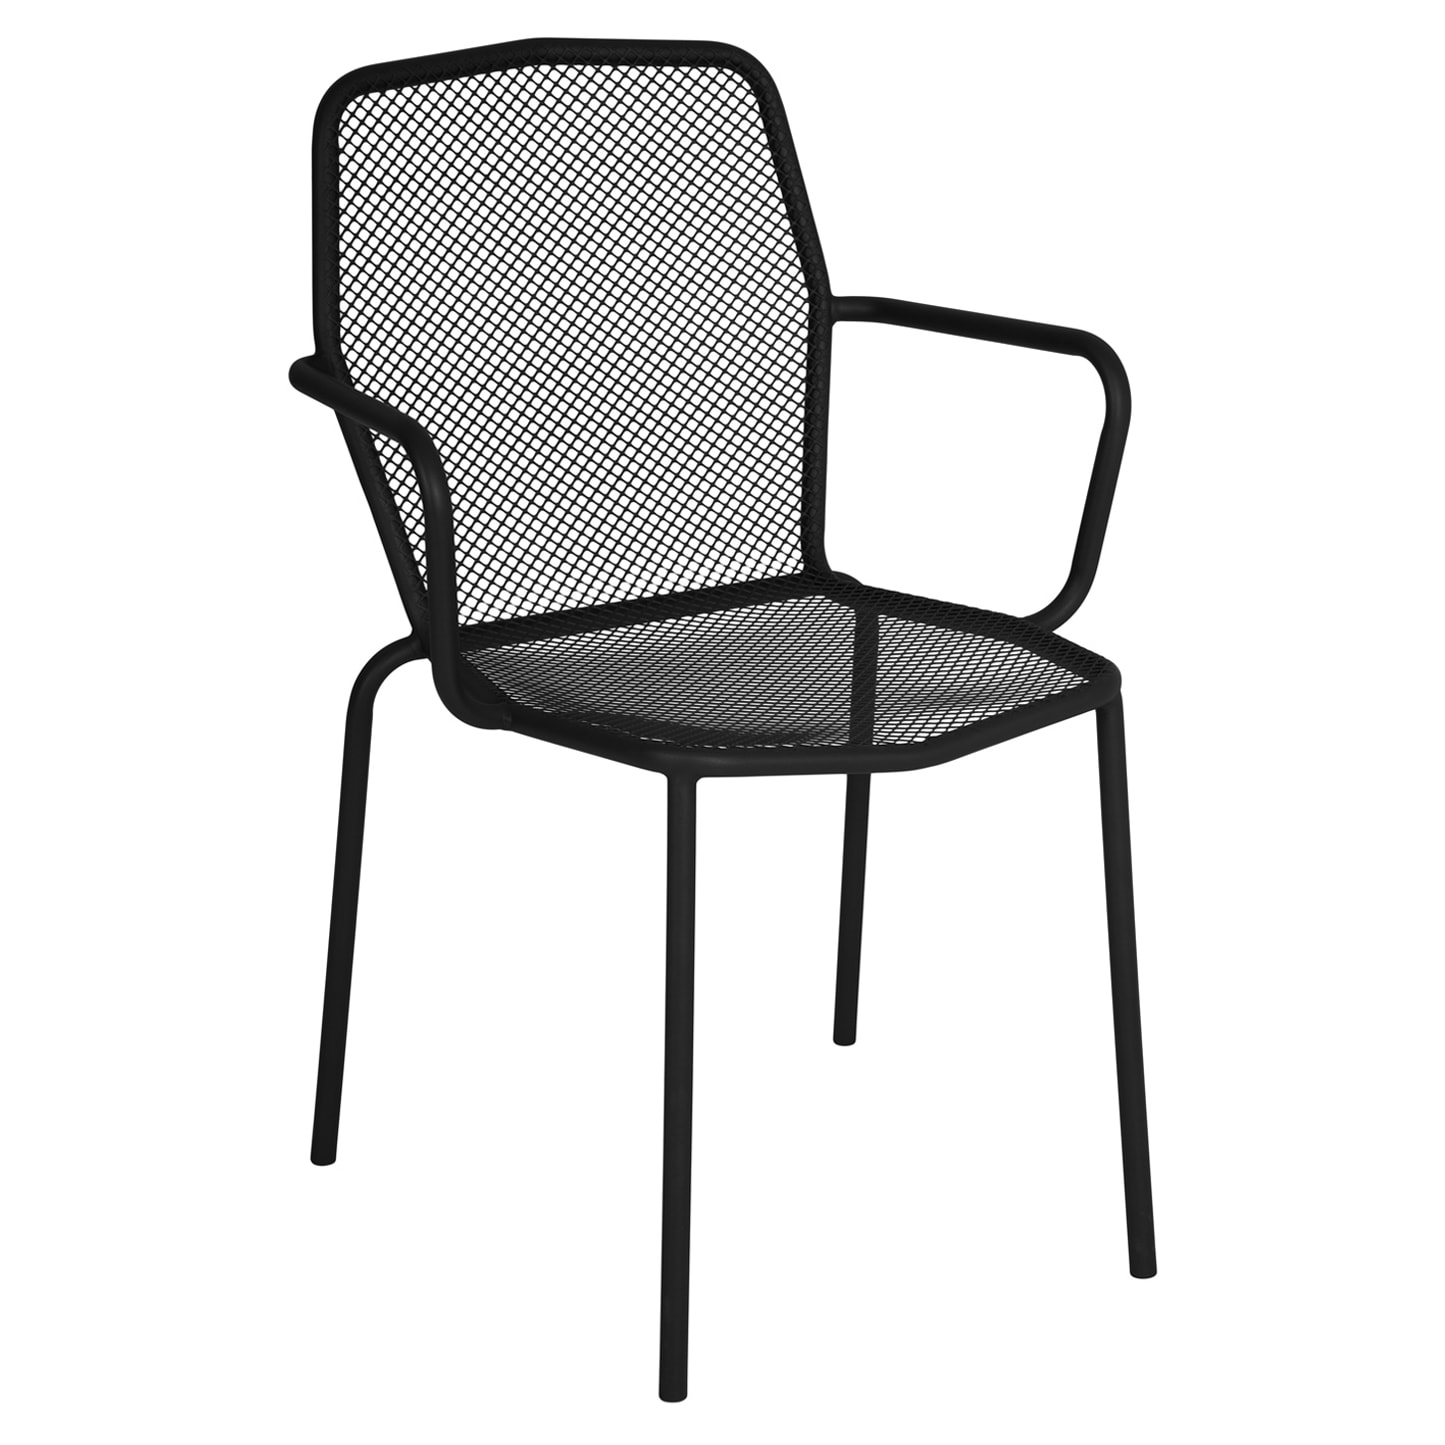 European Style Micro-Mesh Patio Arm Chair